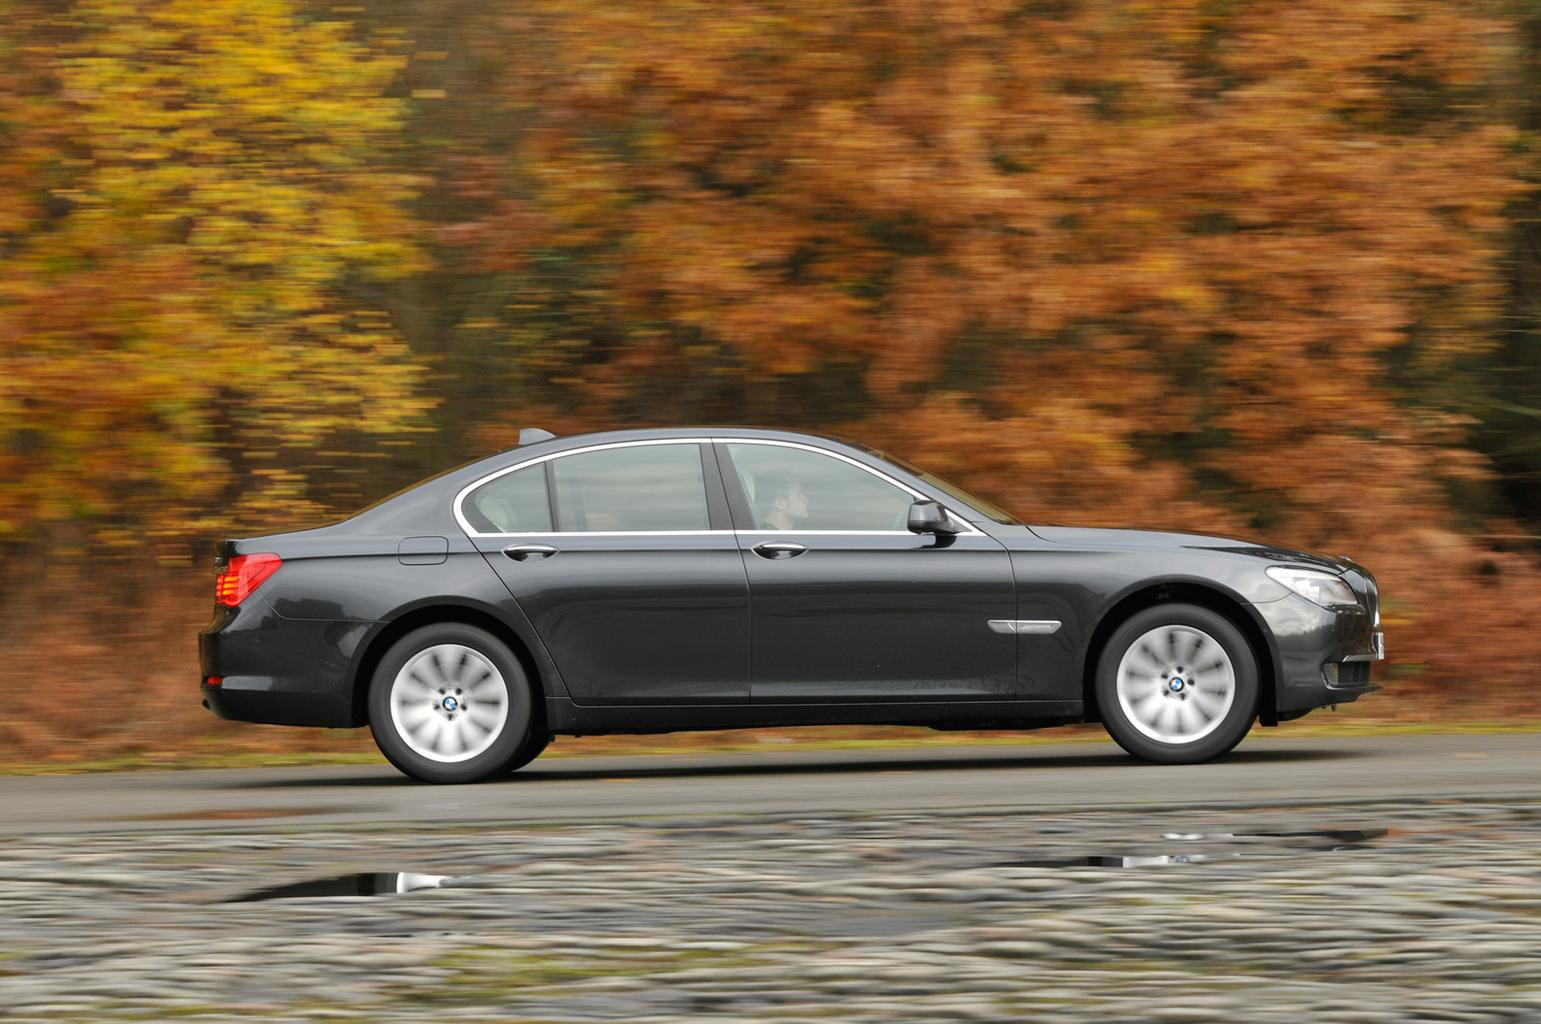 Haggle hard and save 31% on a new BMW